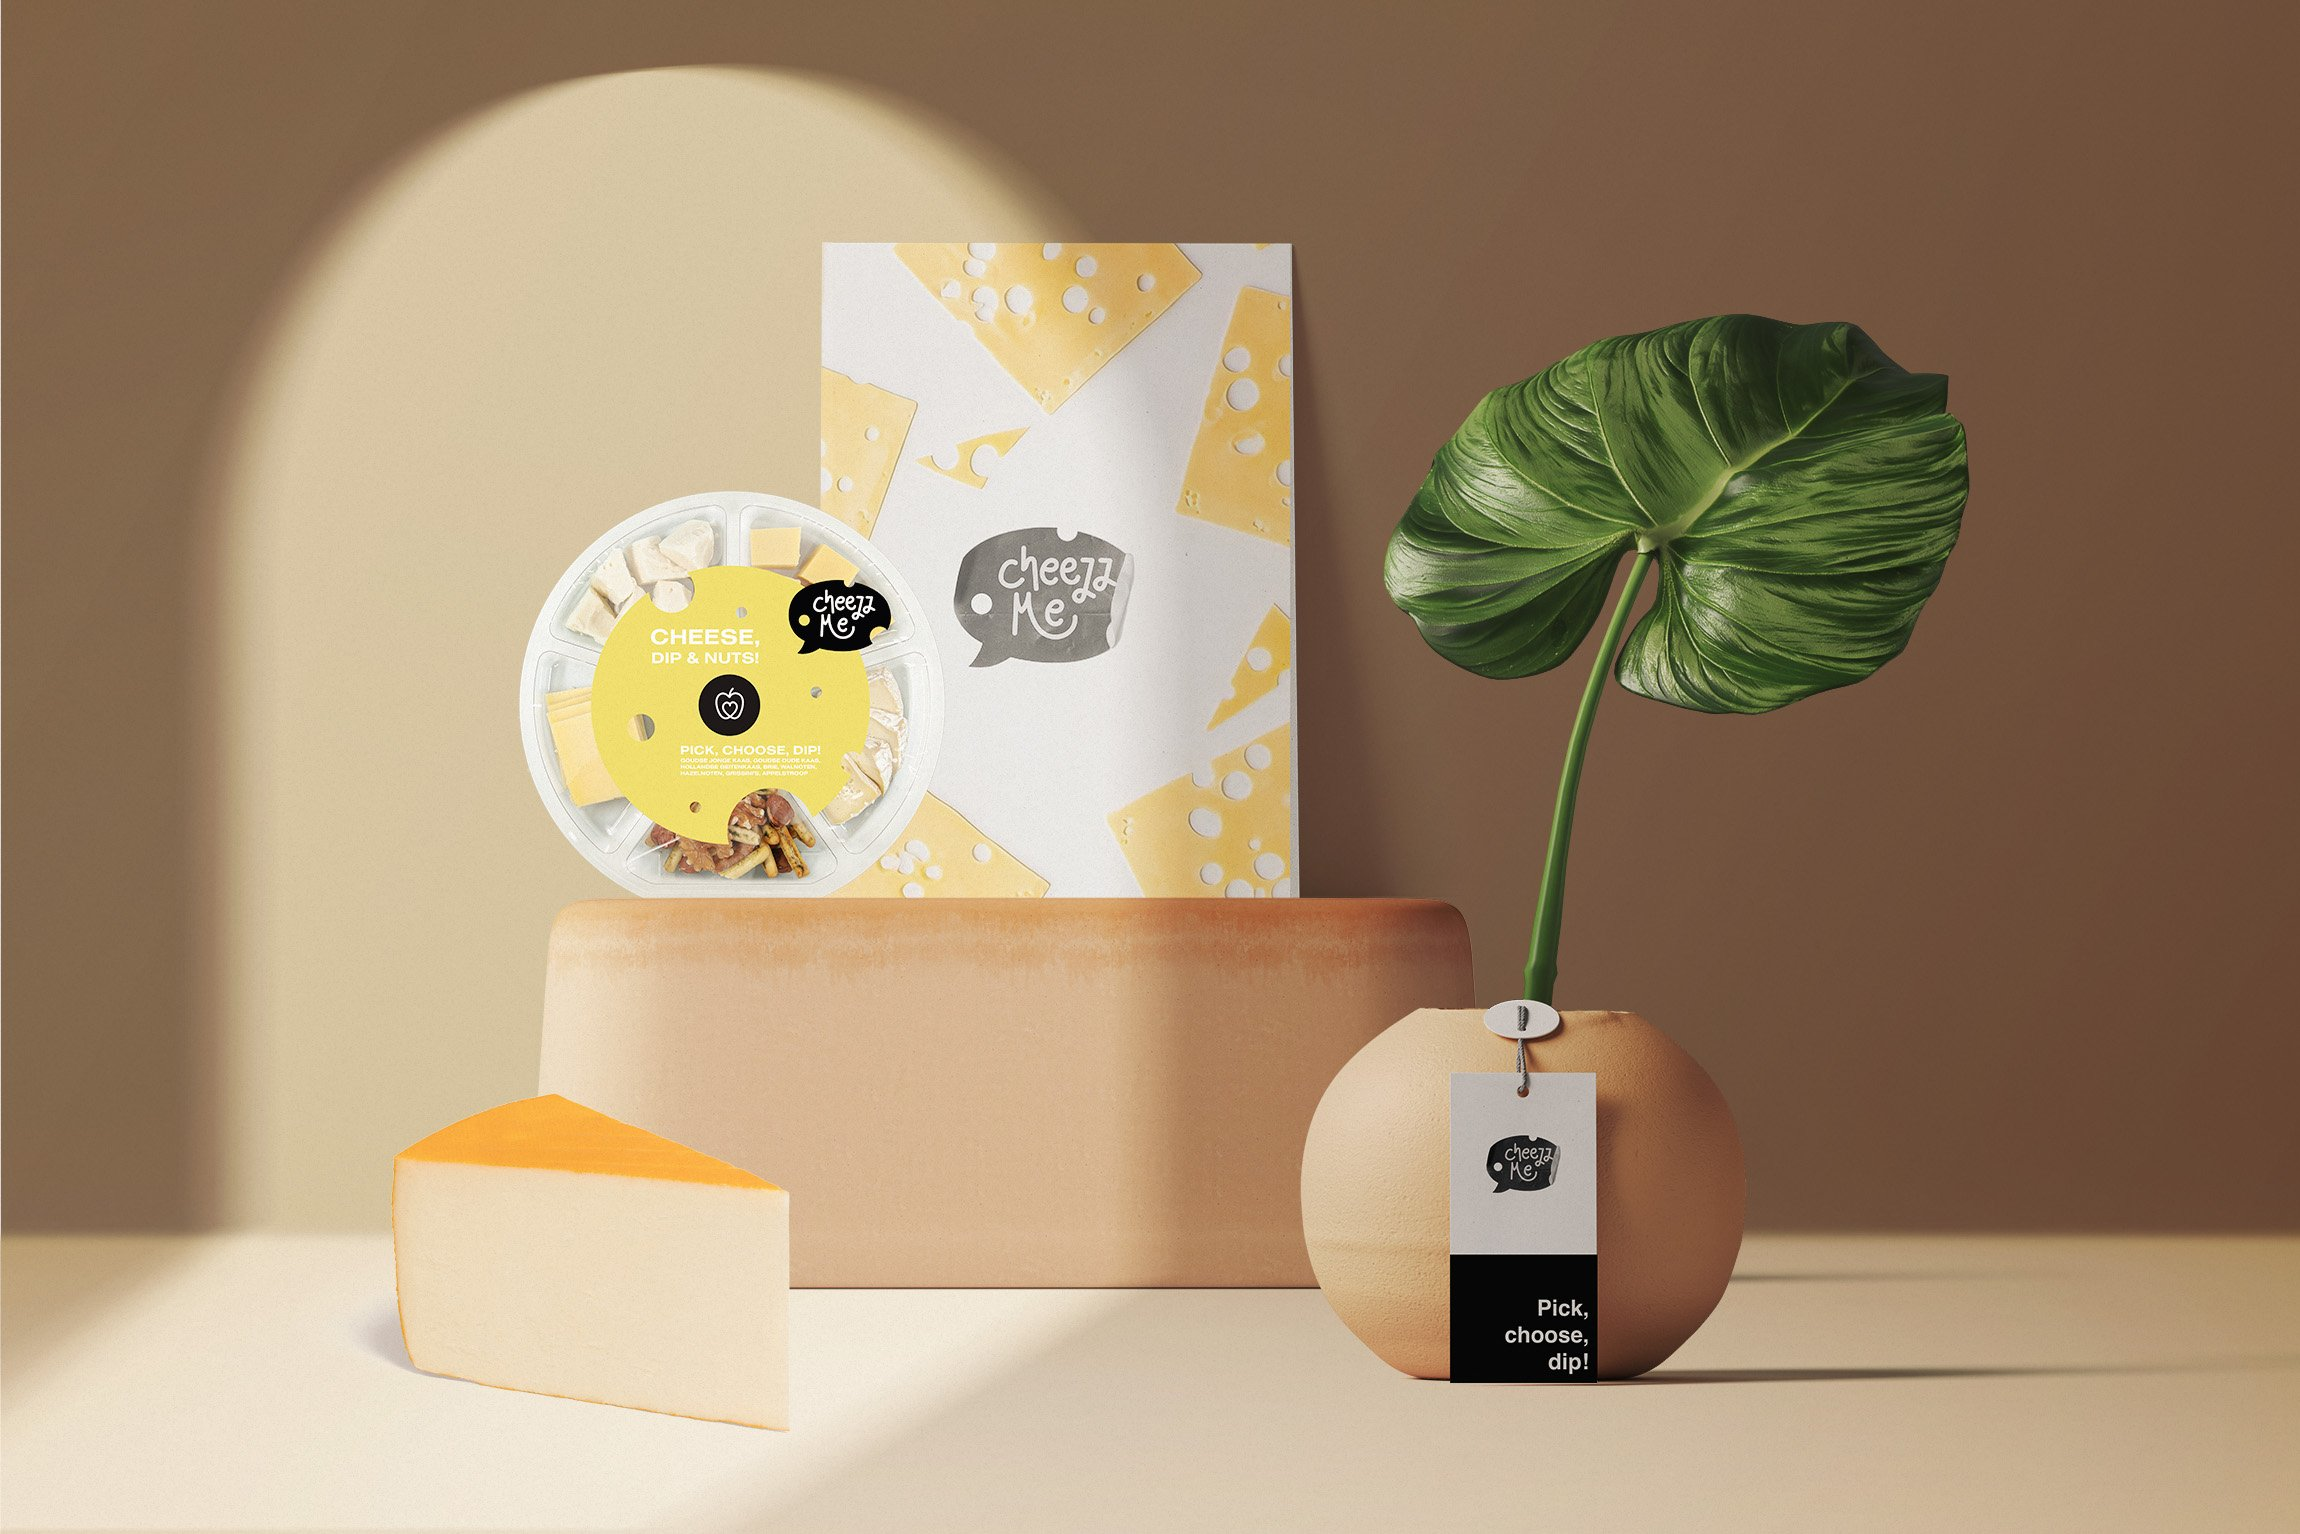 Cheezz Me - Product Branding and Packaging Design - Branding & Positionering